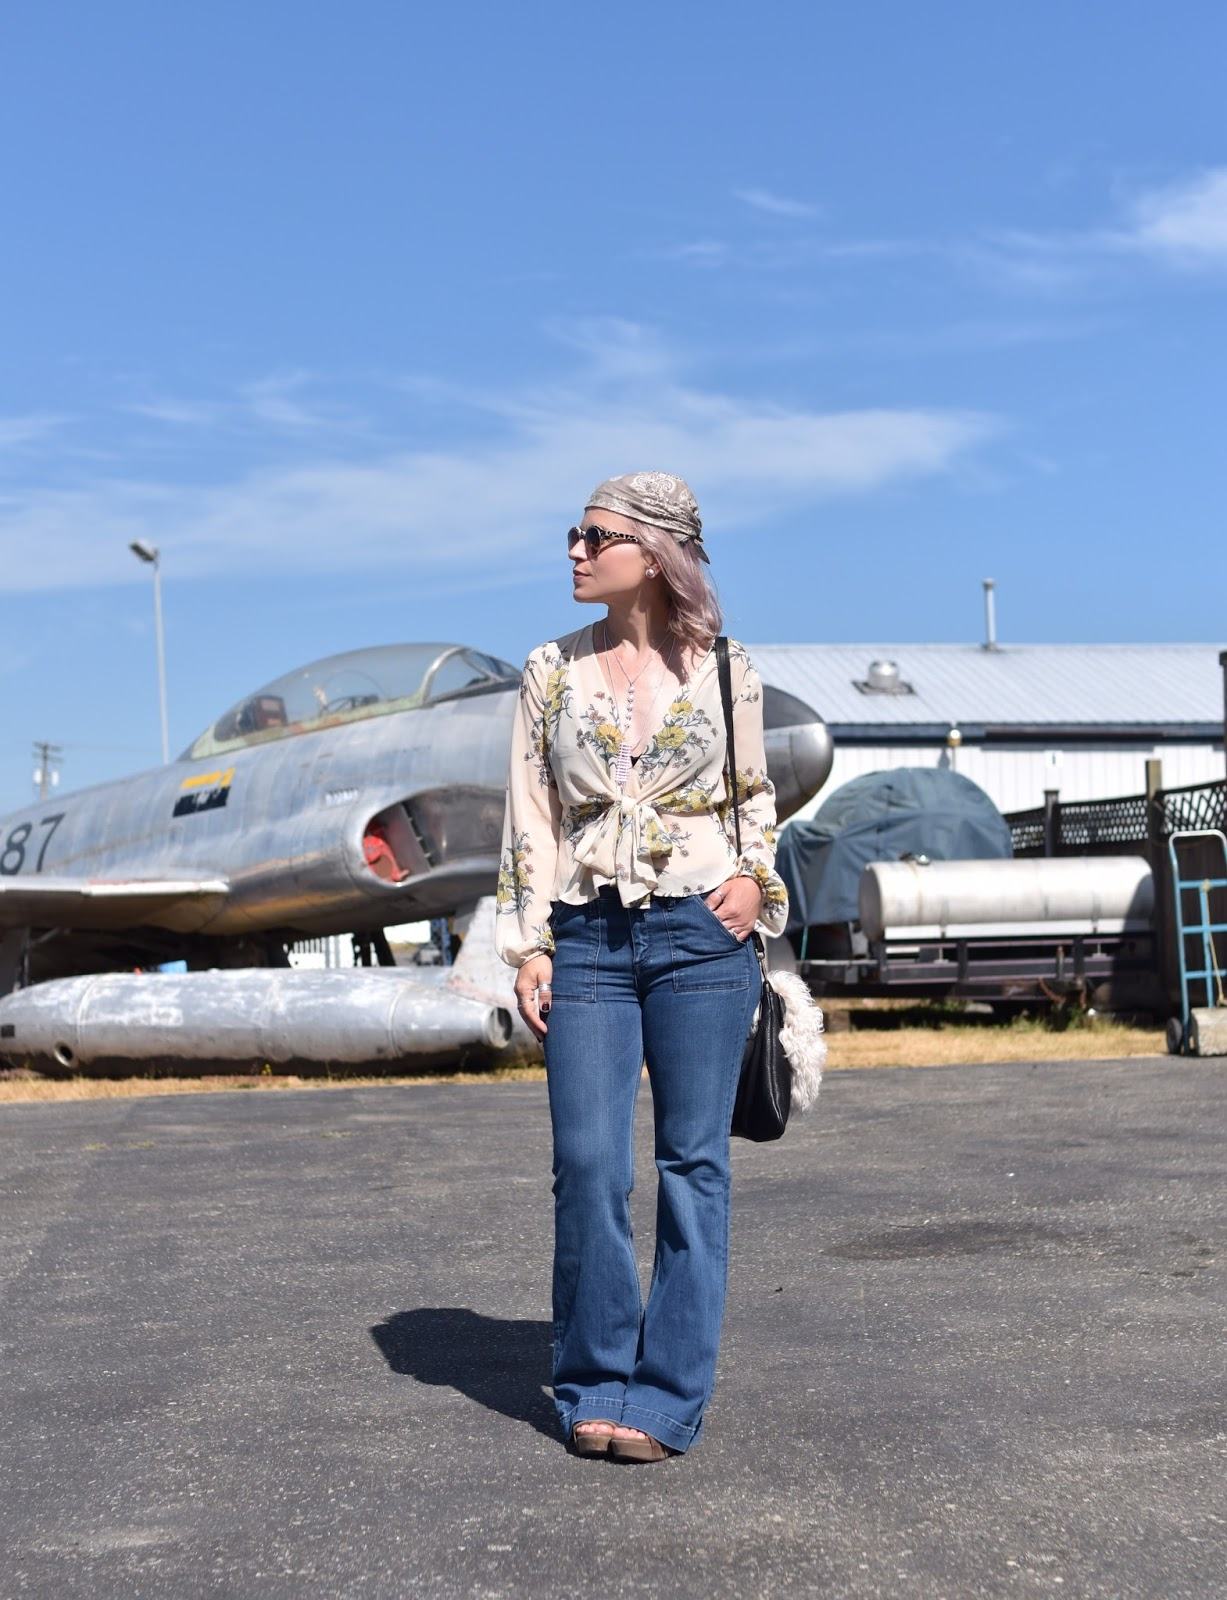 Flight plan:  styling a tie-front floral blouse with flare jeans and a bandana head scarf